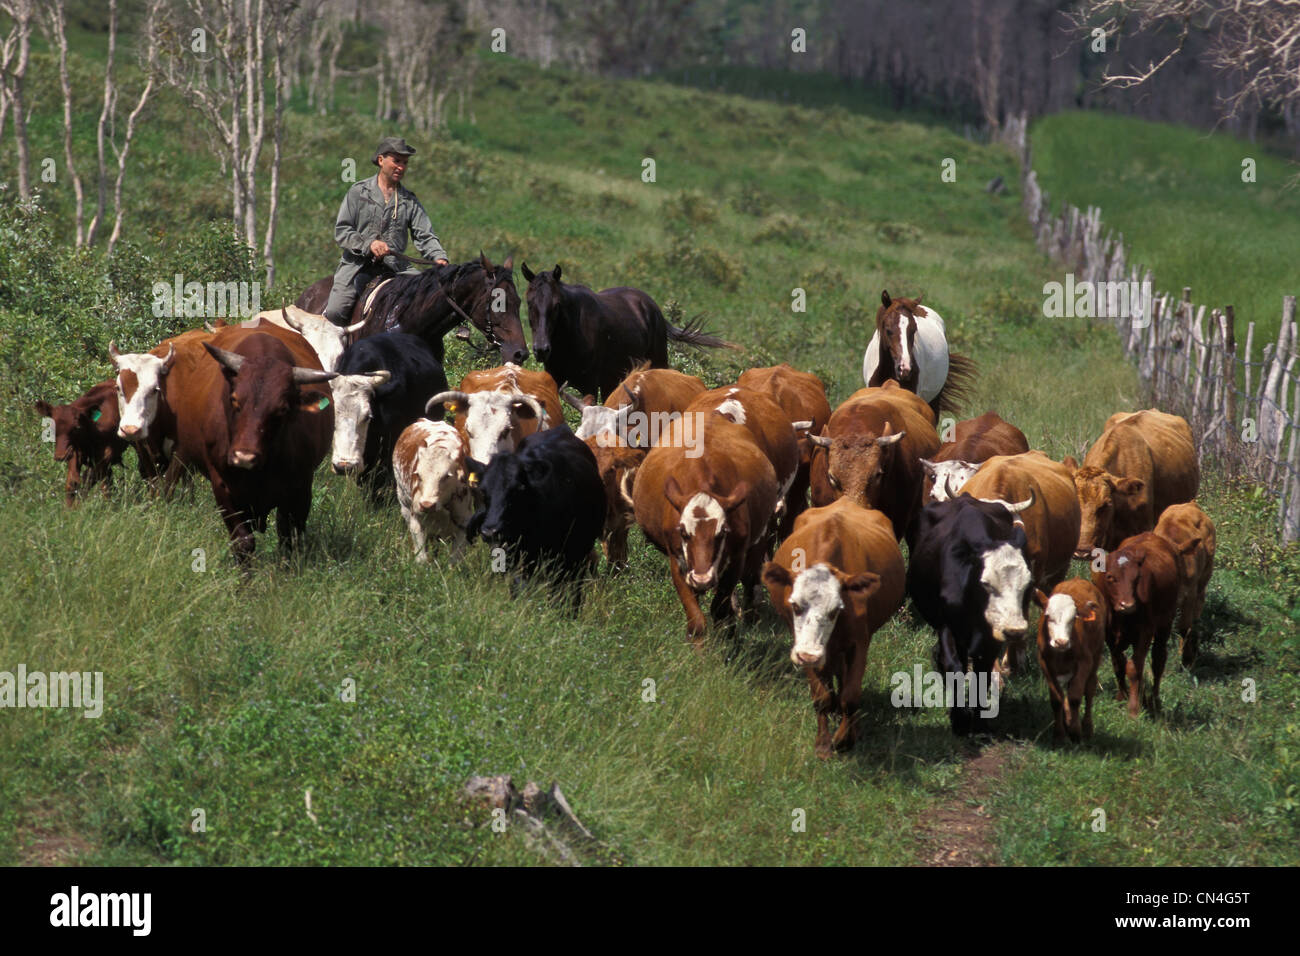 Stockman Stock Photos & Stockman Stock Images - Alamy